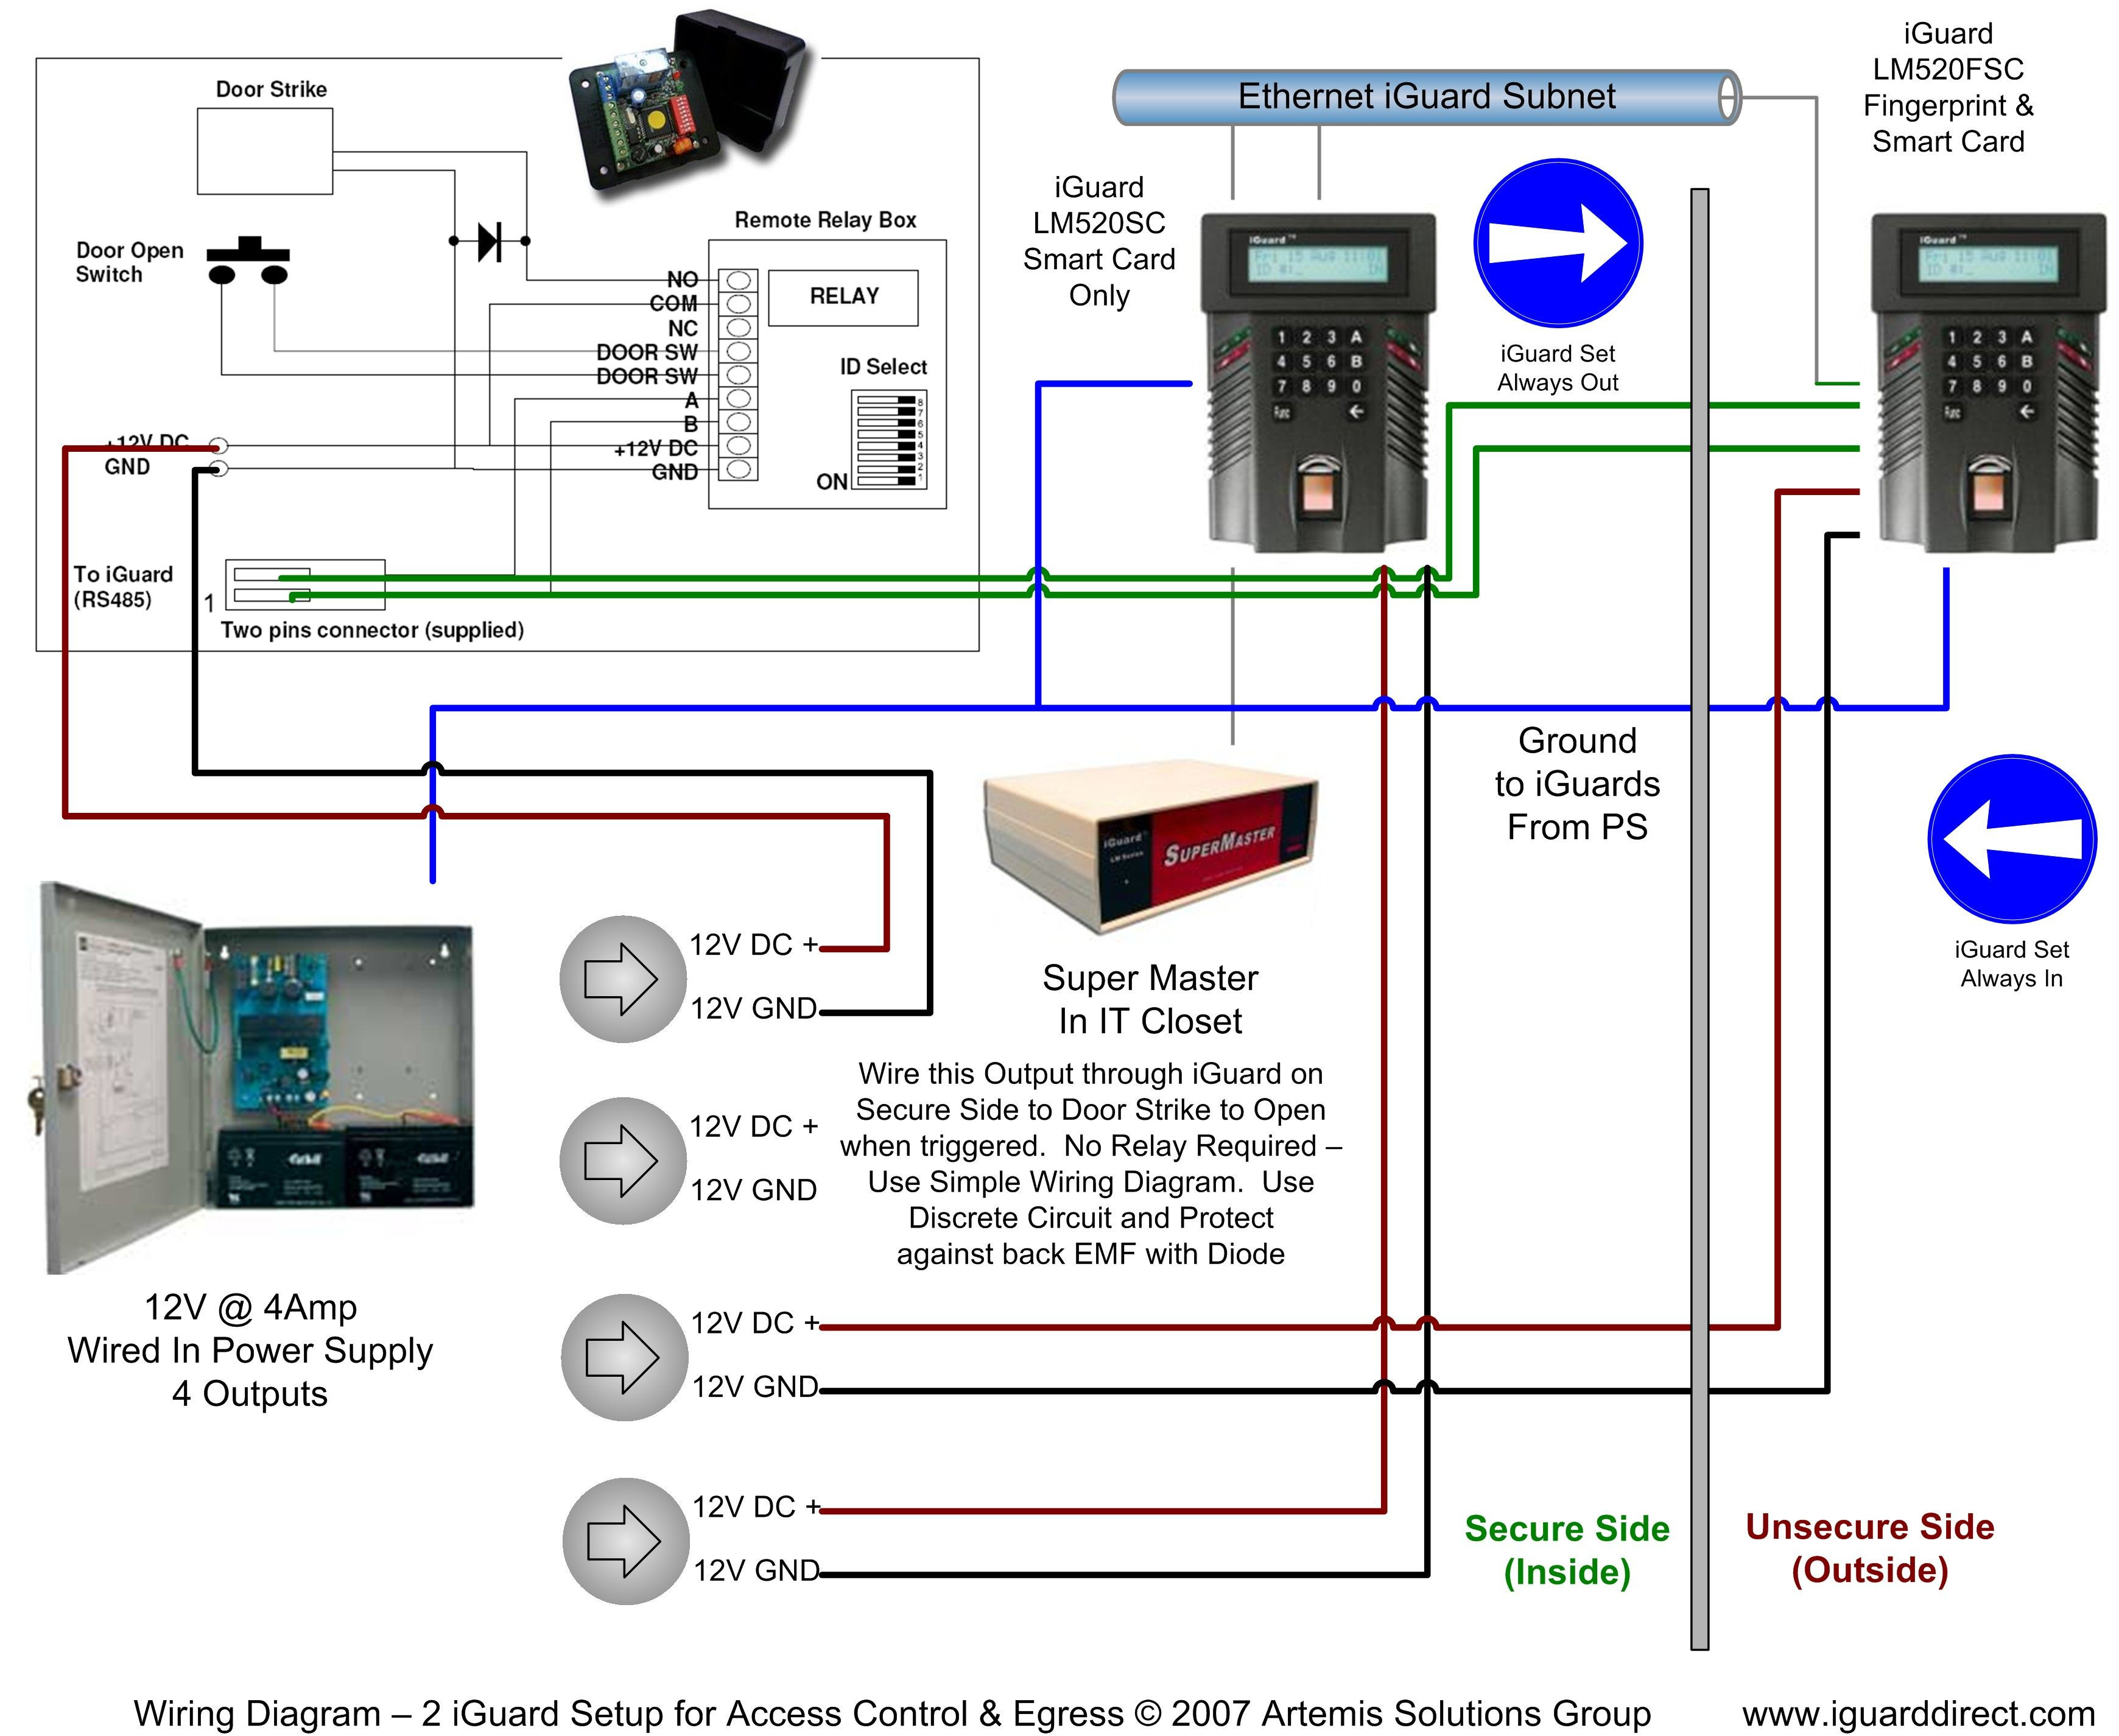 door access control system wiring diagram pdf Download-Wiring Diagram Door Access Control System top rated Access Control Systems and Methodology 4-h